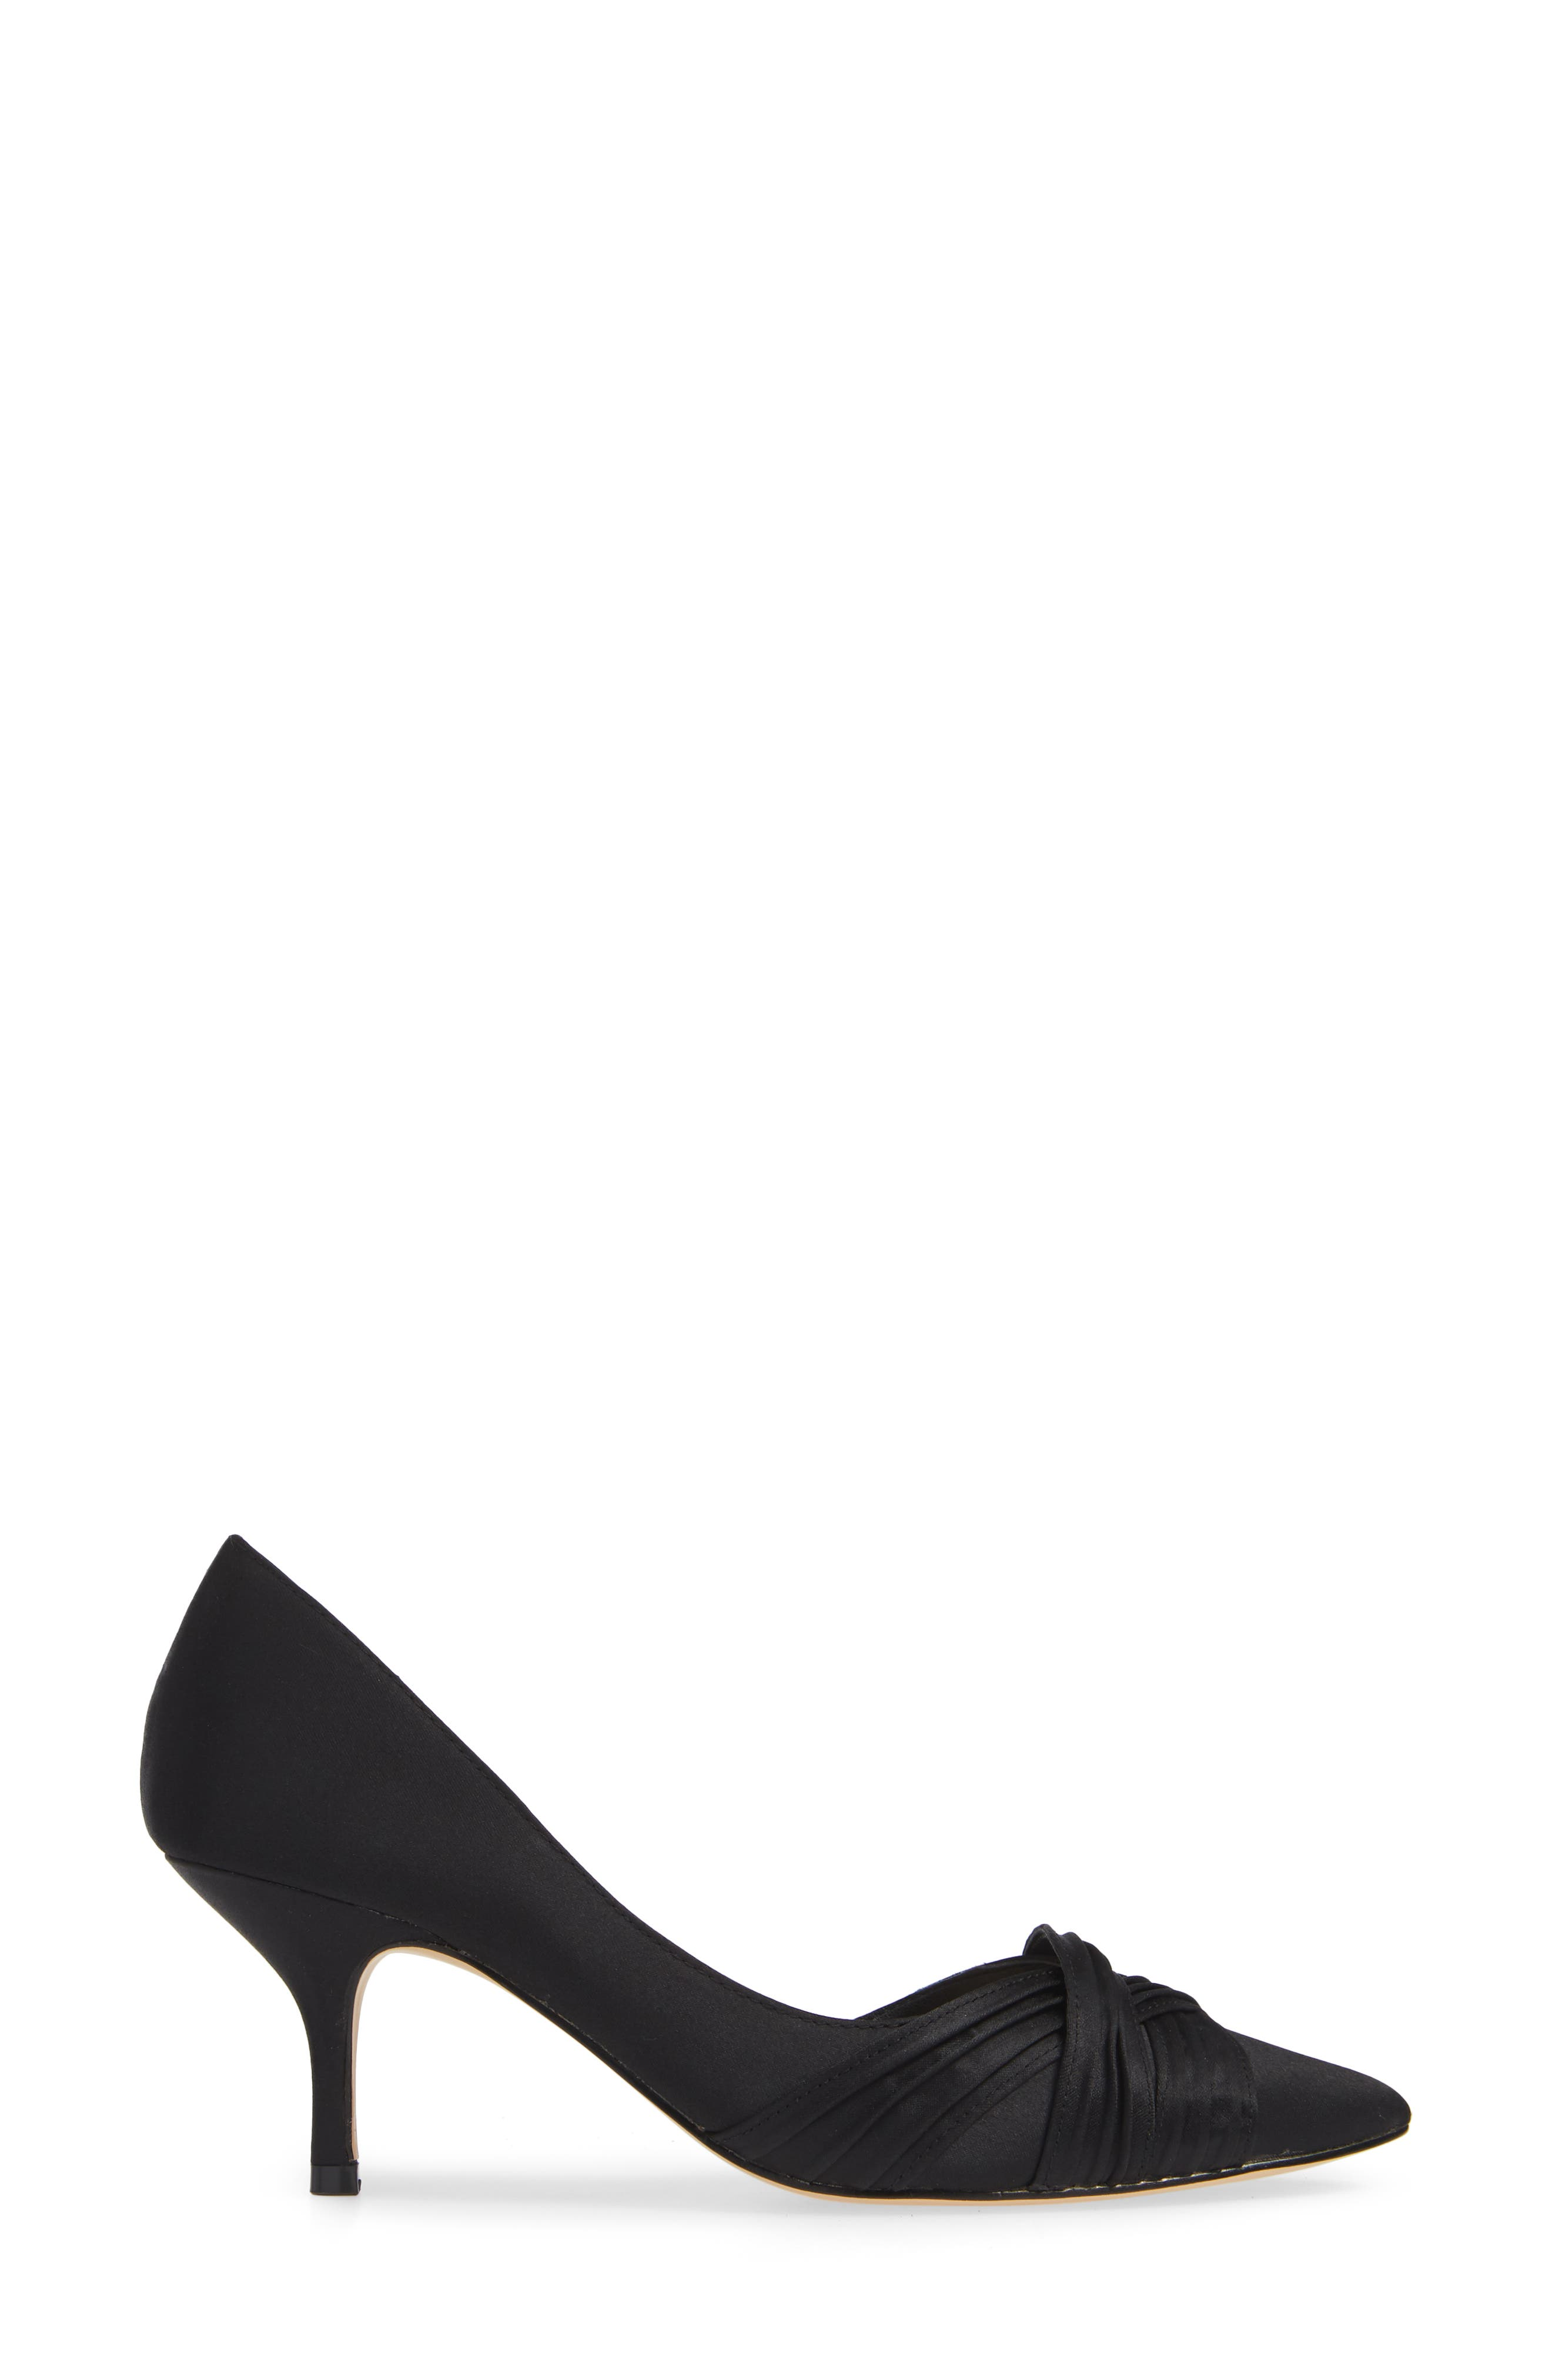 Blakely Half d'Orsay Pointy Toe Pump,                             Alternate thumbnail 3, color,                             BLACK SATIN